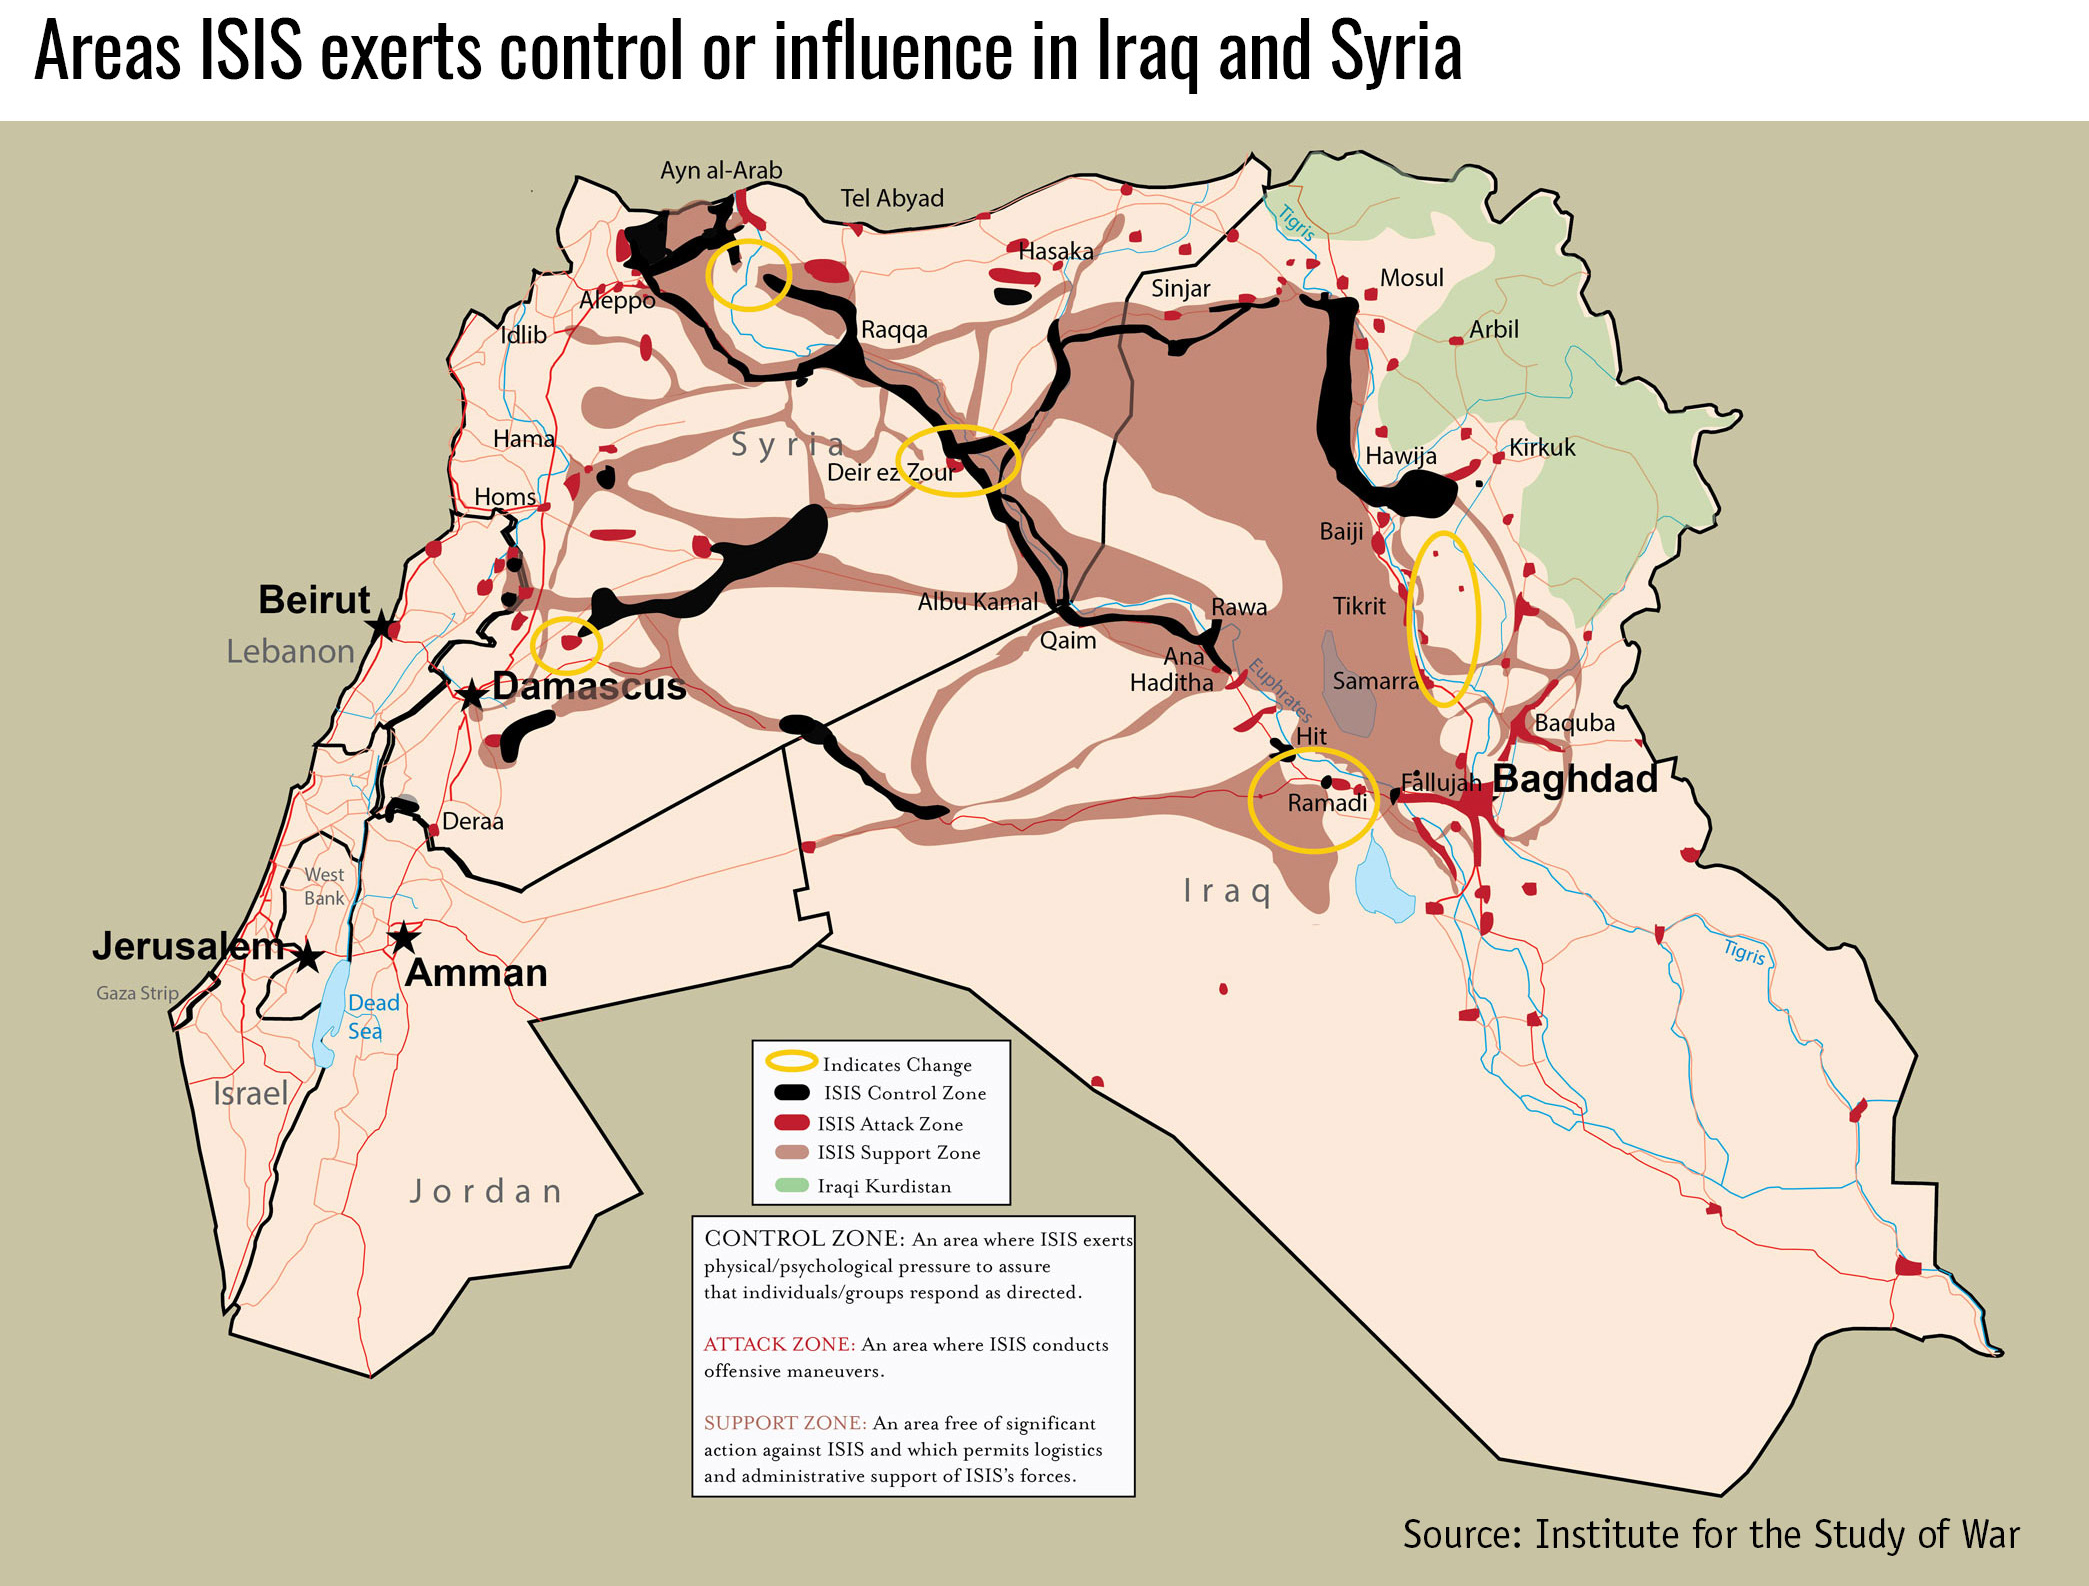 Areas ISIS exerts control or influence in Iraq and Syria